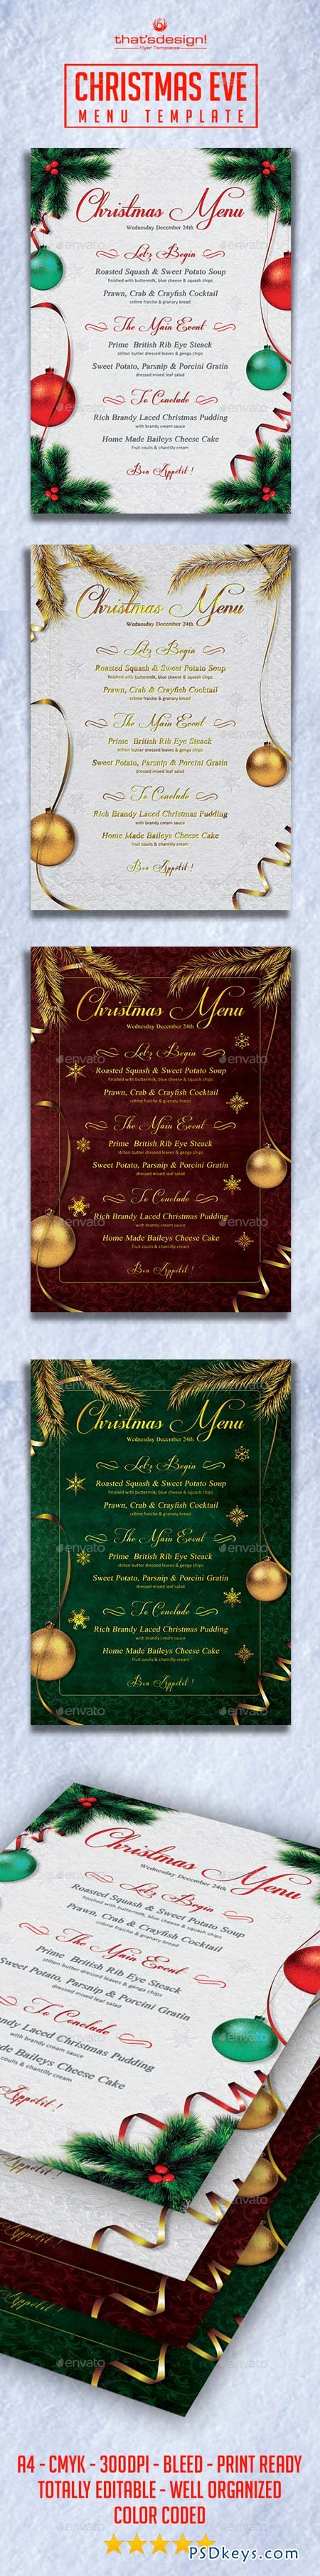 Christmas Eve Menu Template 9207575